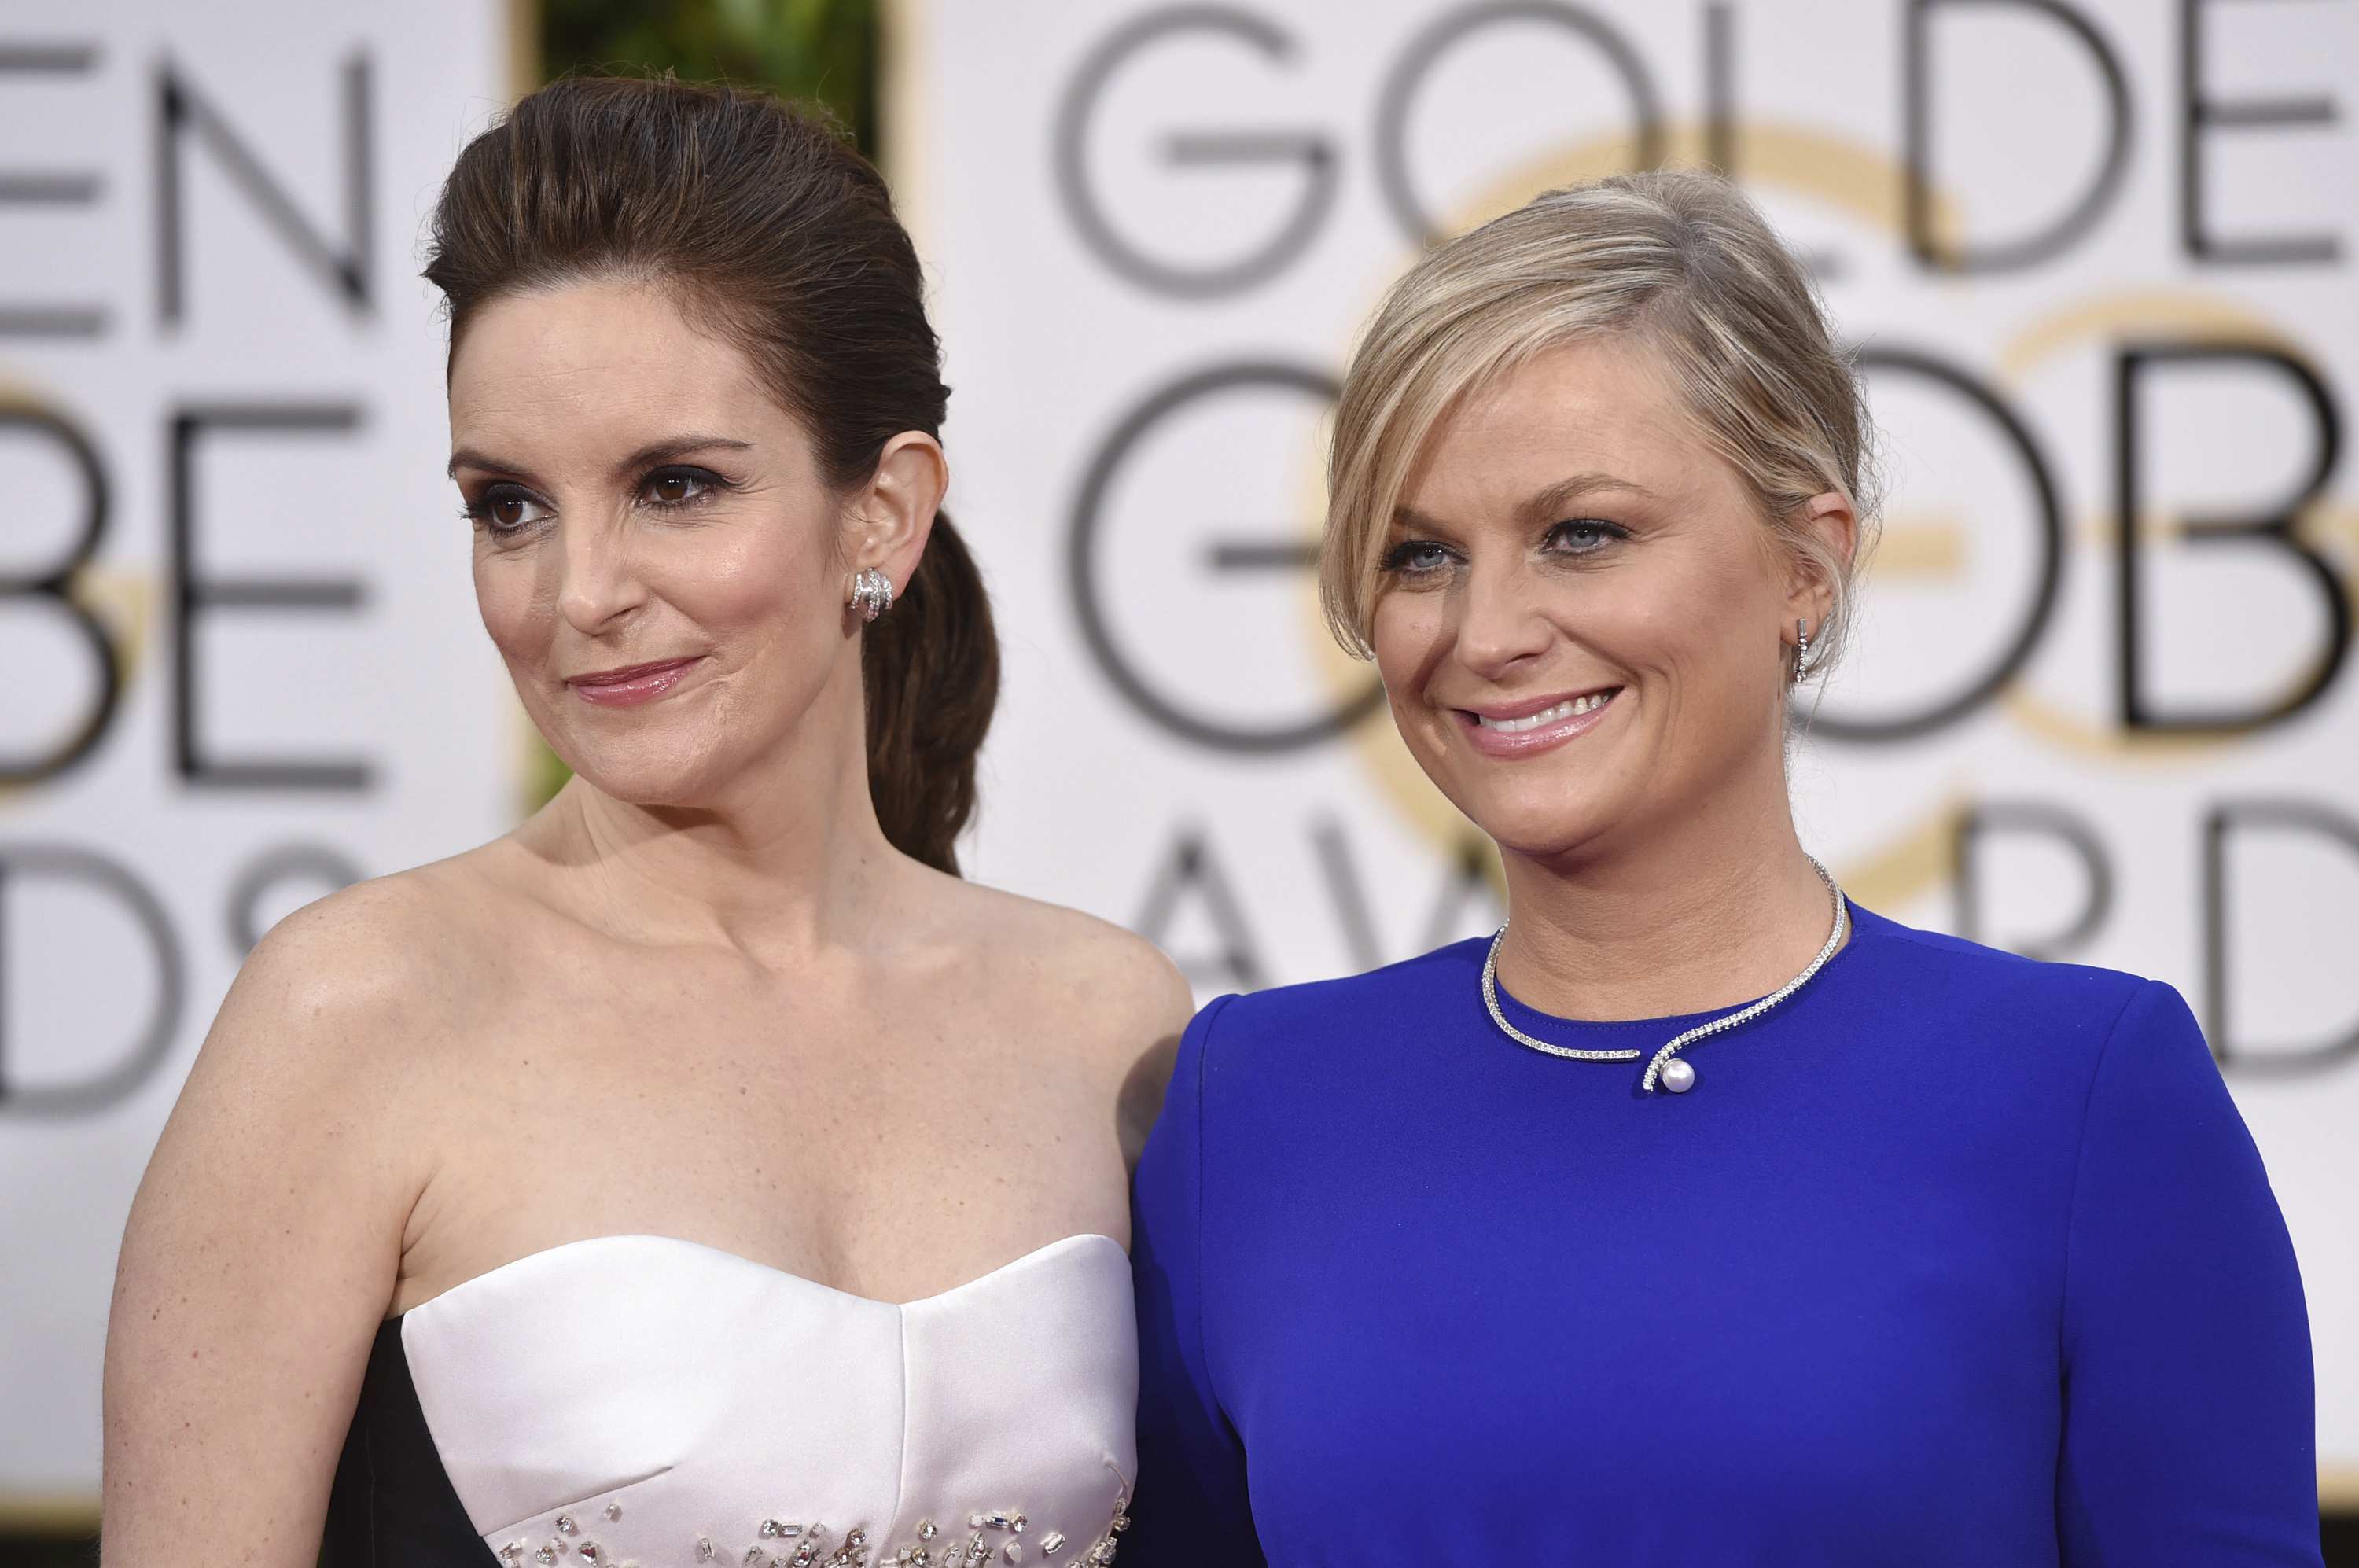 2021 Golden Globes: How to Watch, What to Know